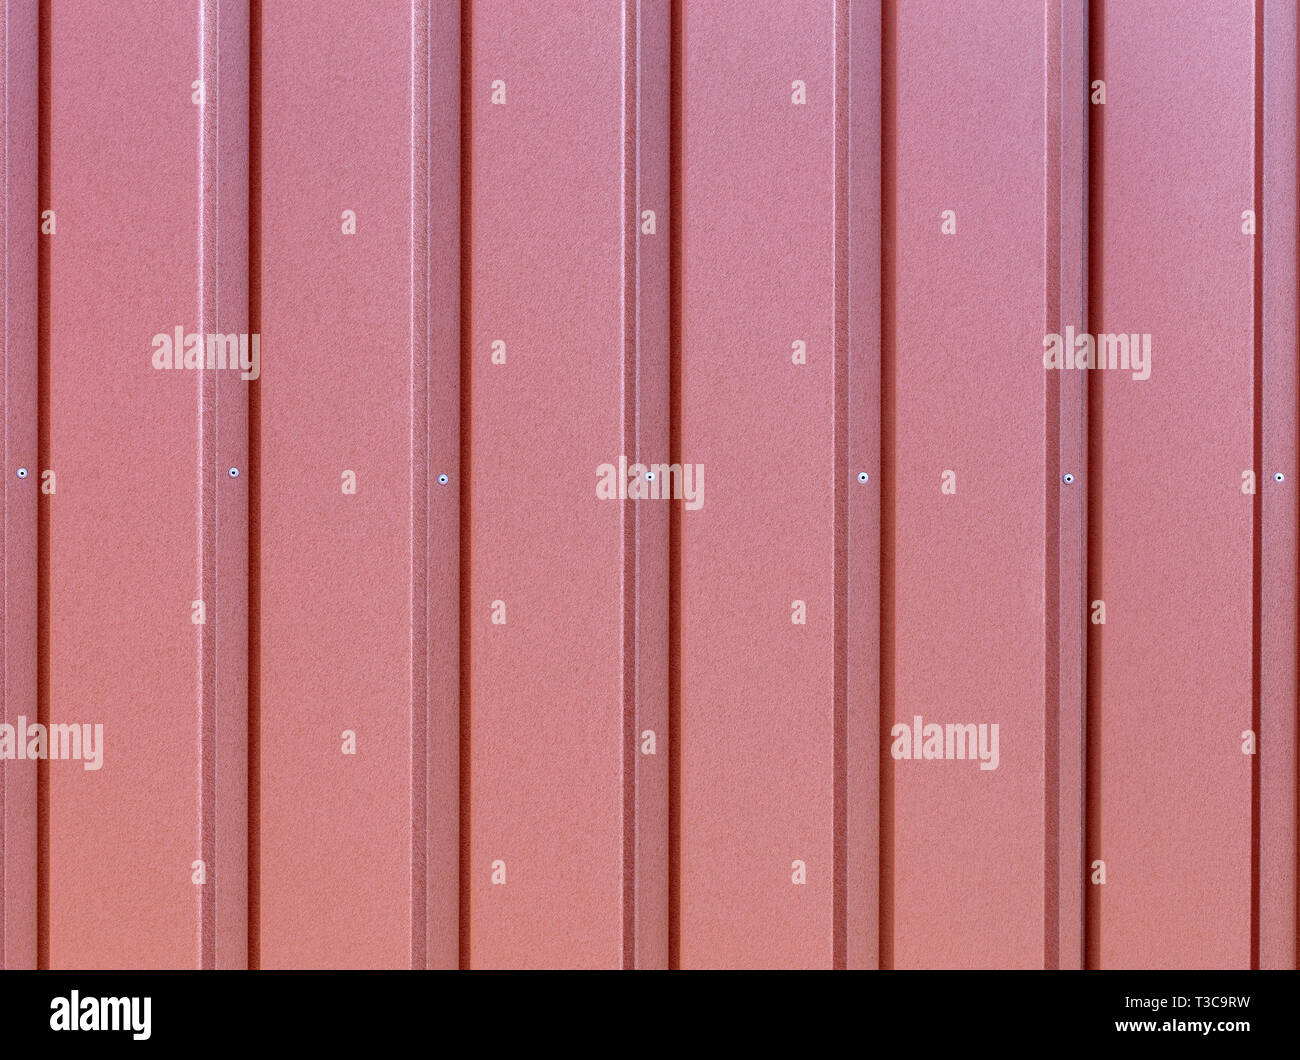 Reddish-brown metal fence made of corrugated steel sheet with vertical guides and metal rivets in the middle. Corrugated reddish-brown iron sheet back - Stock Image